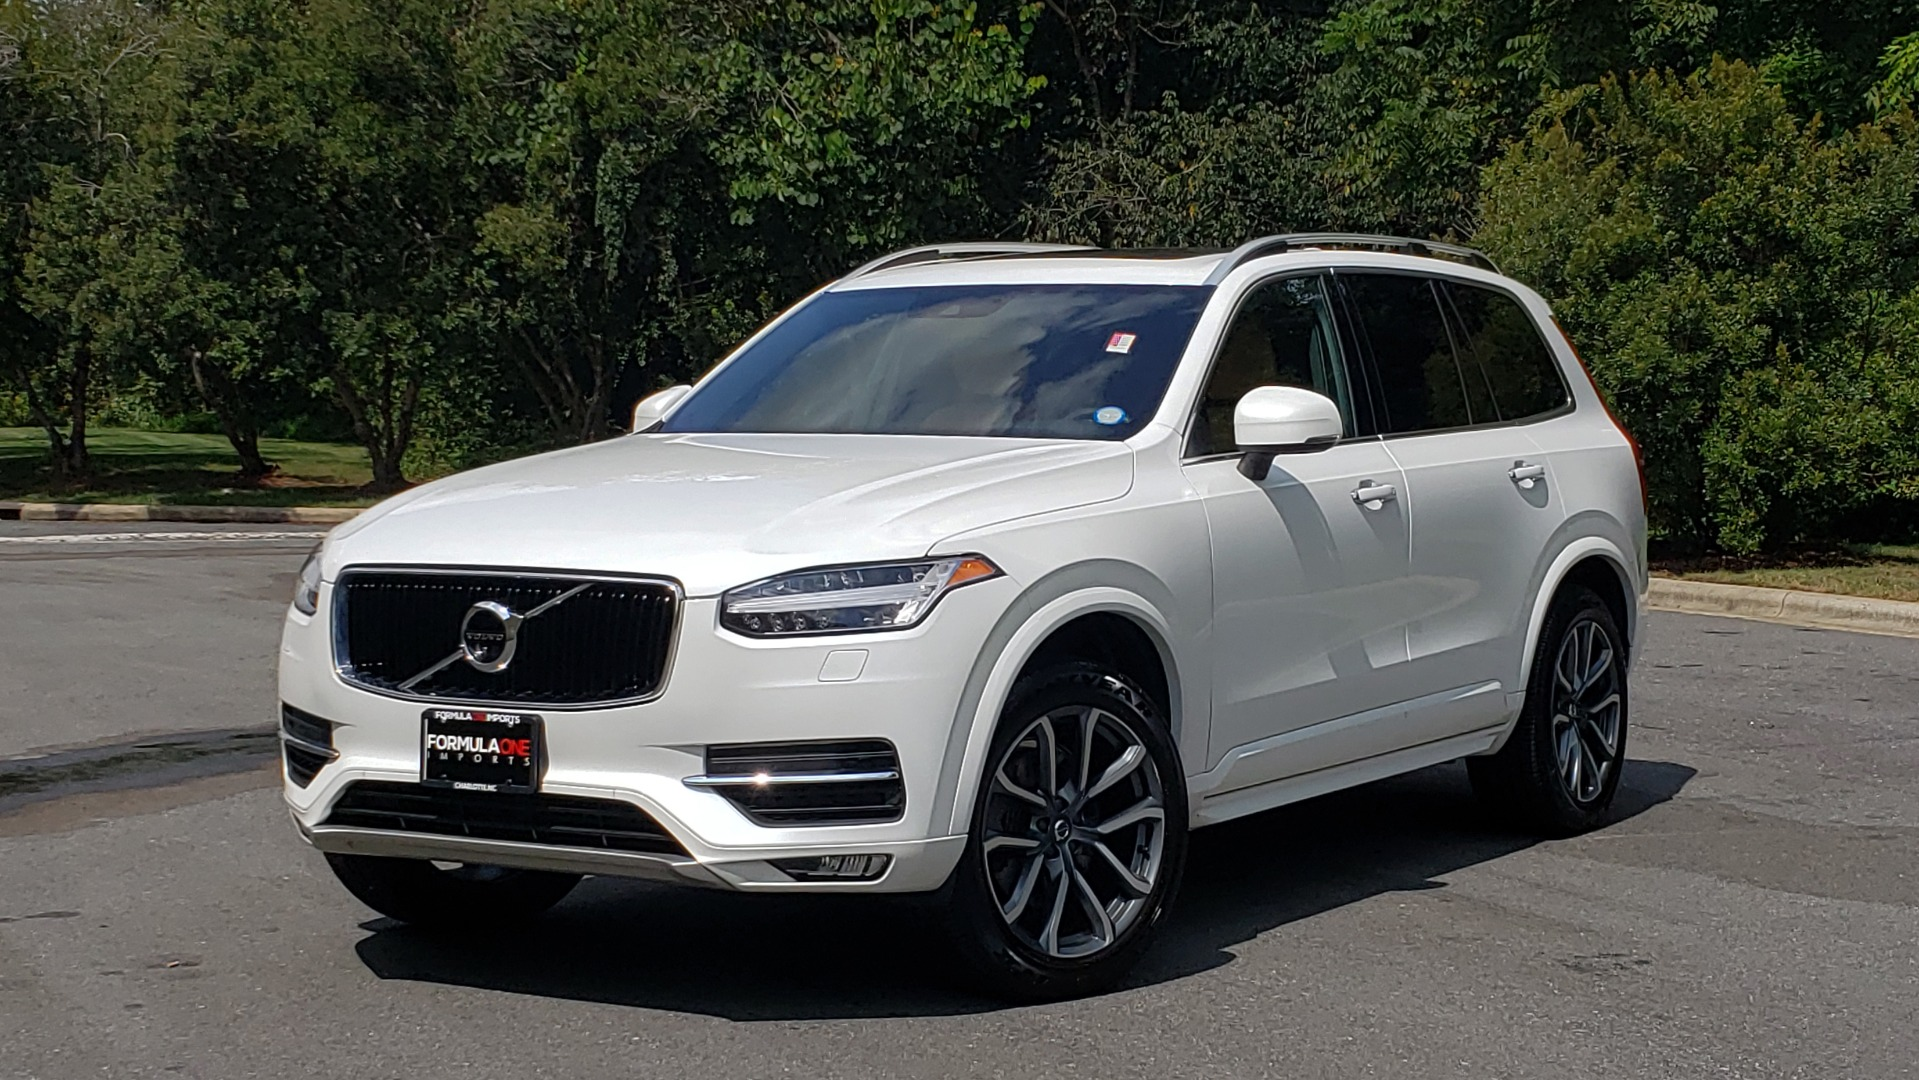 Used 2017 Volvo XC90 MOMENTUM PLUS T6 AWD / NAV / VISION / PROTECTION PKG for sale $34,995 at Formula Imports in Charlotte NC 28227 1